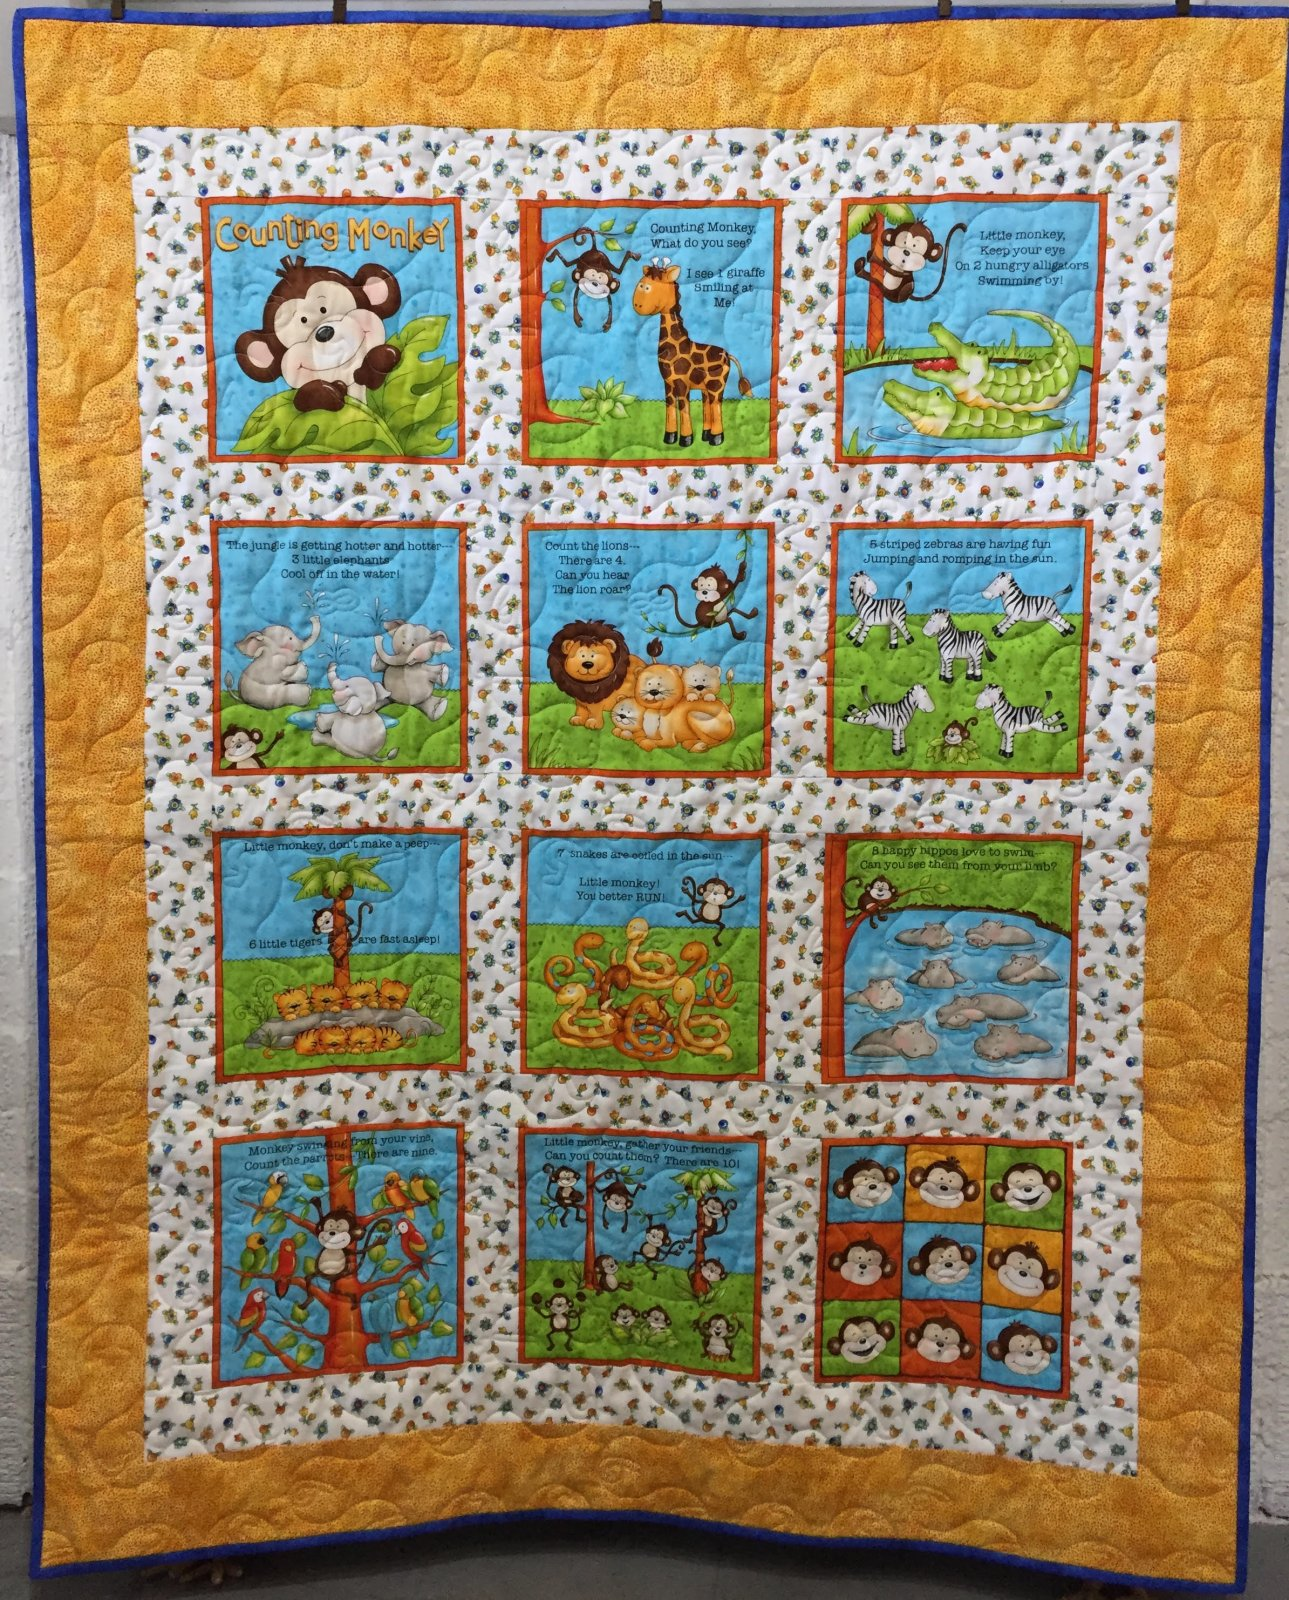 Counting Monkeys Quilt